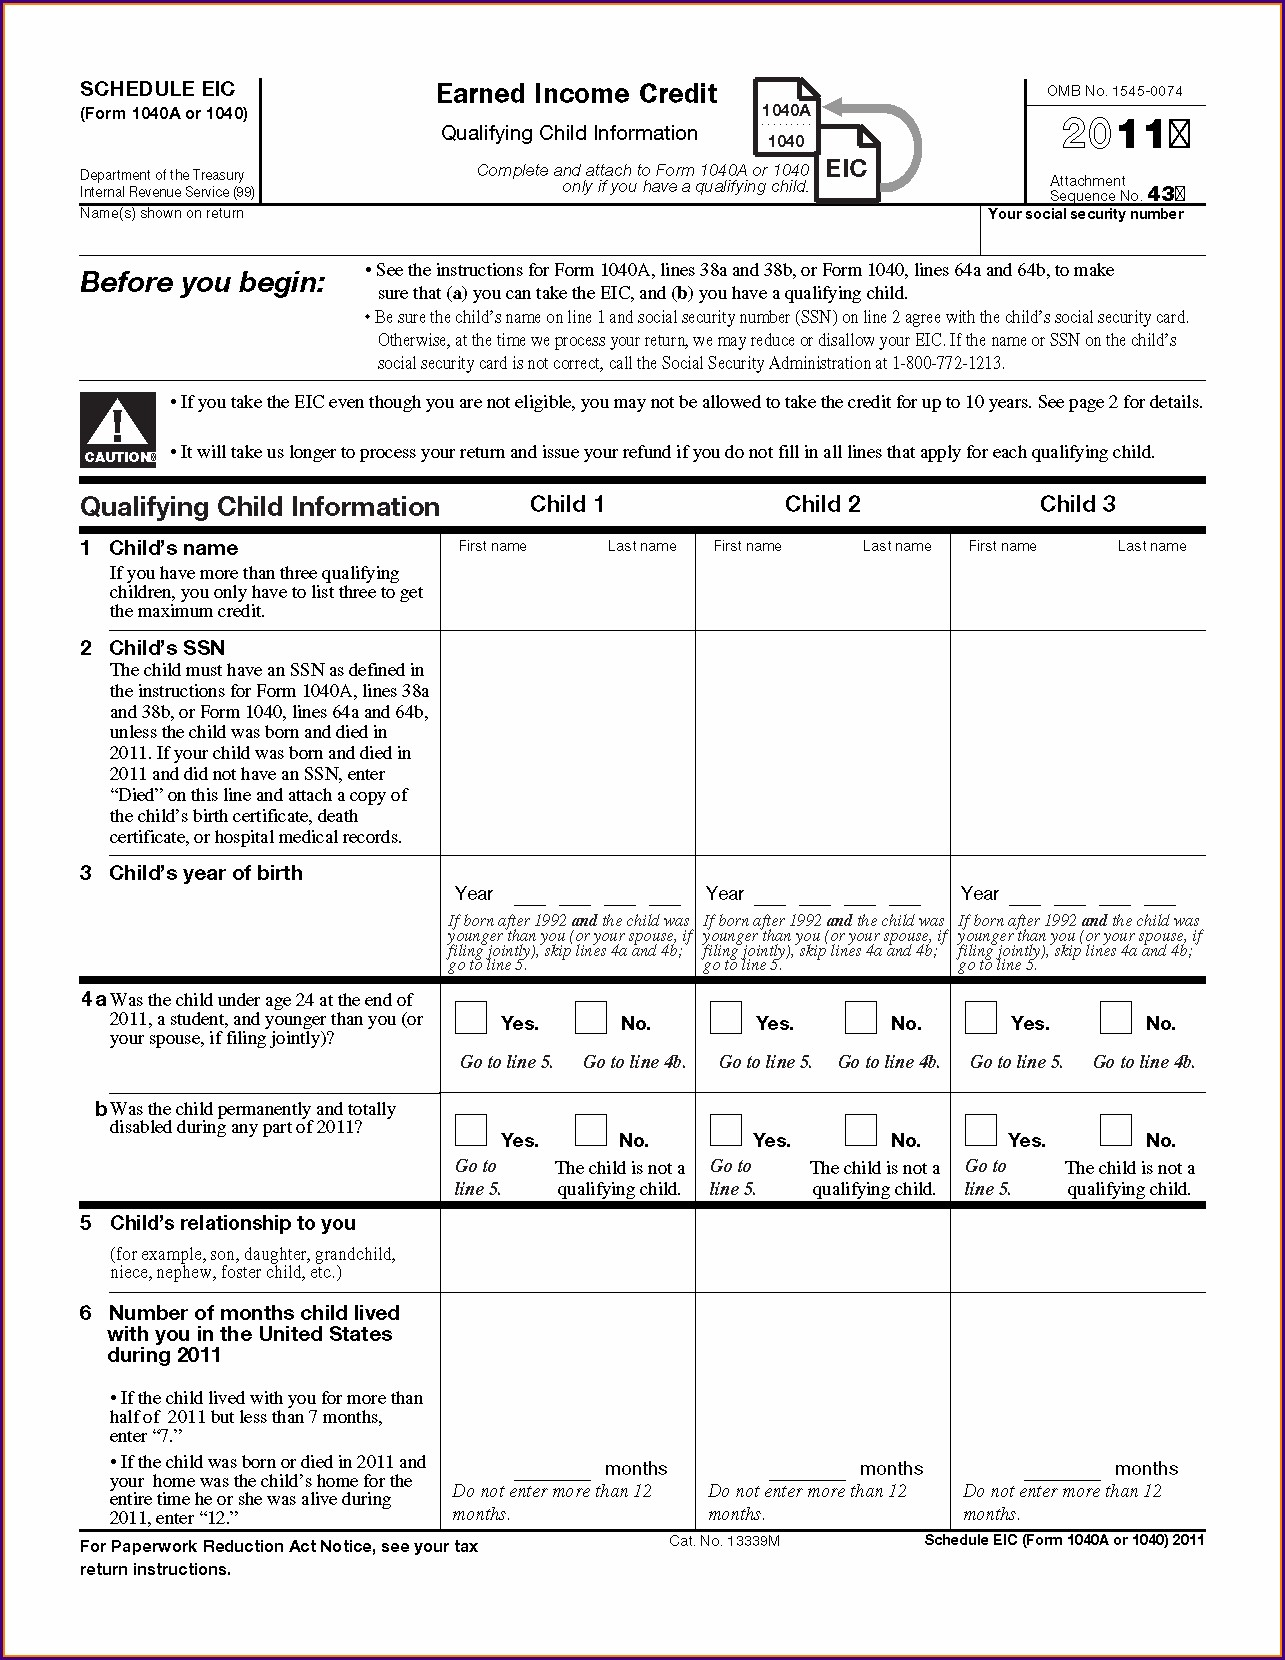 Us Schedule Eic Earned Income Credit Worksheet